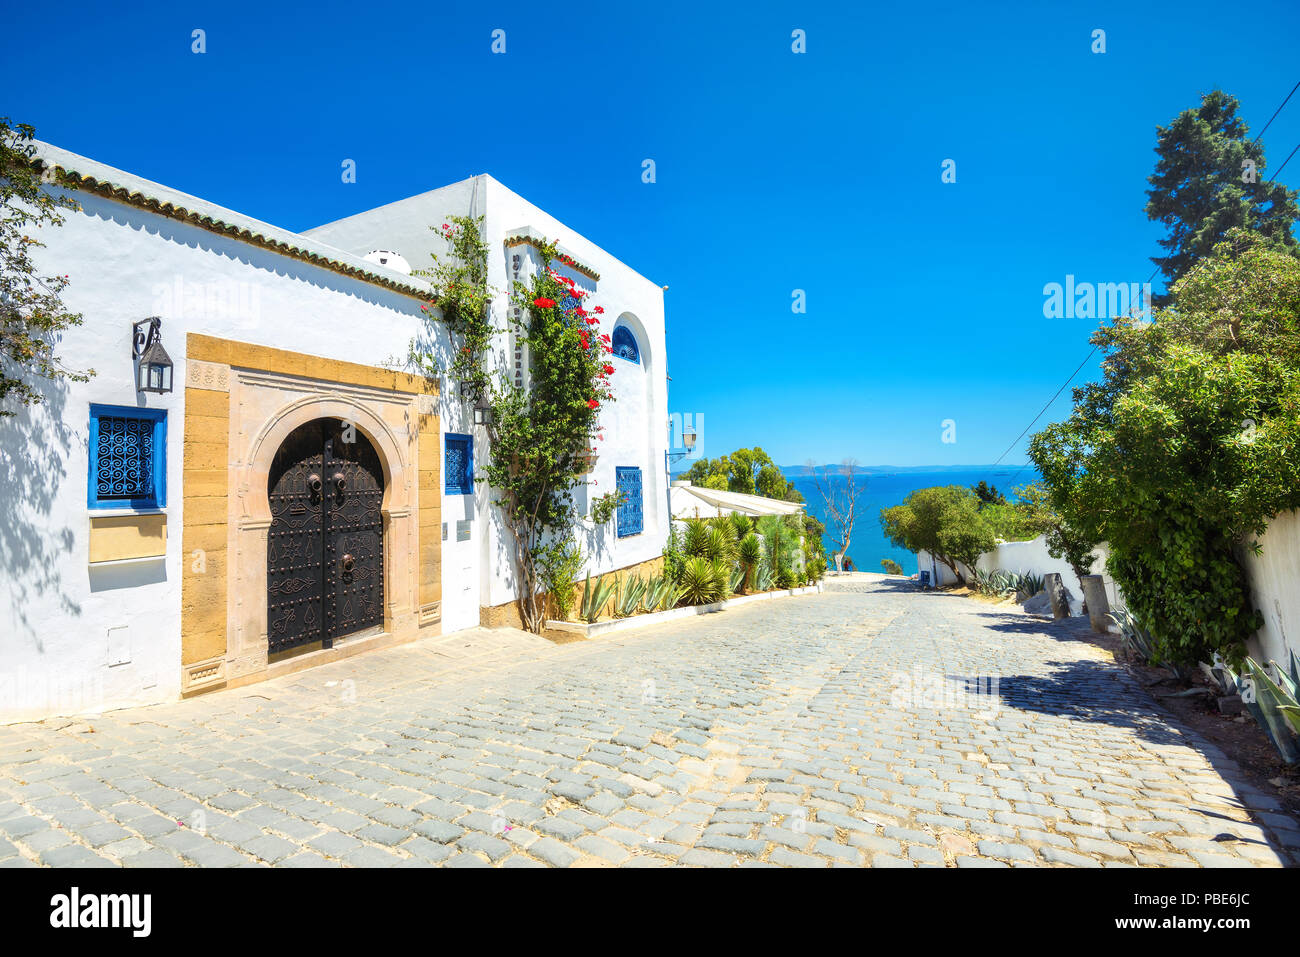 Street in white blue town Sidi Bou Said. Tunisia, North Africa - Stock Image